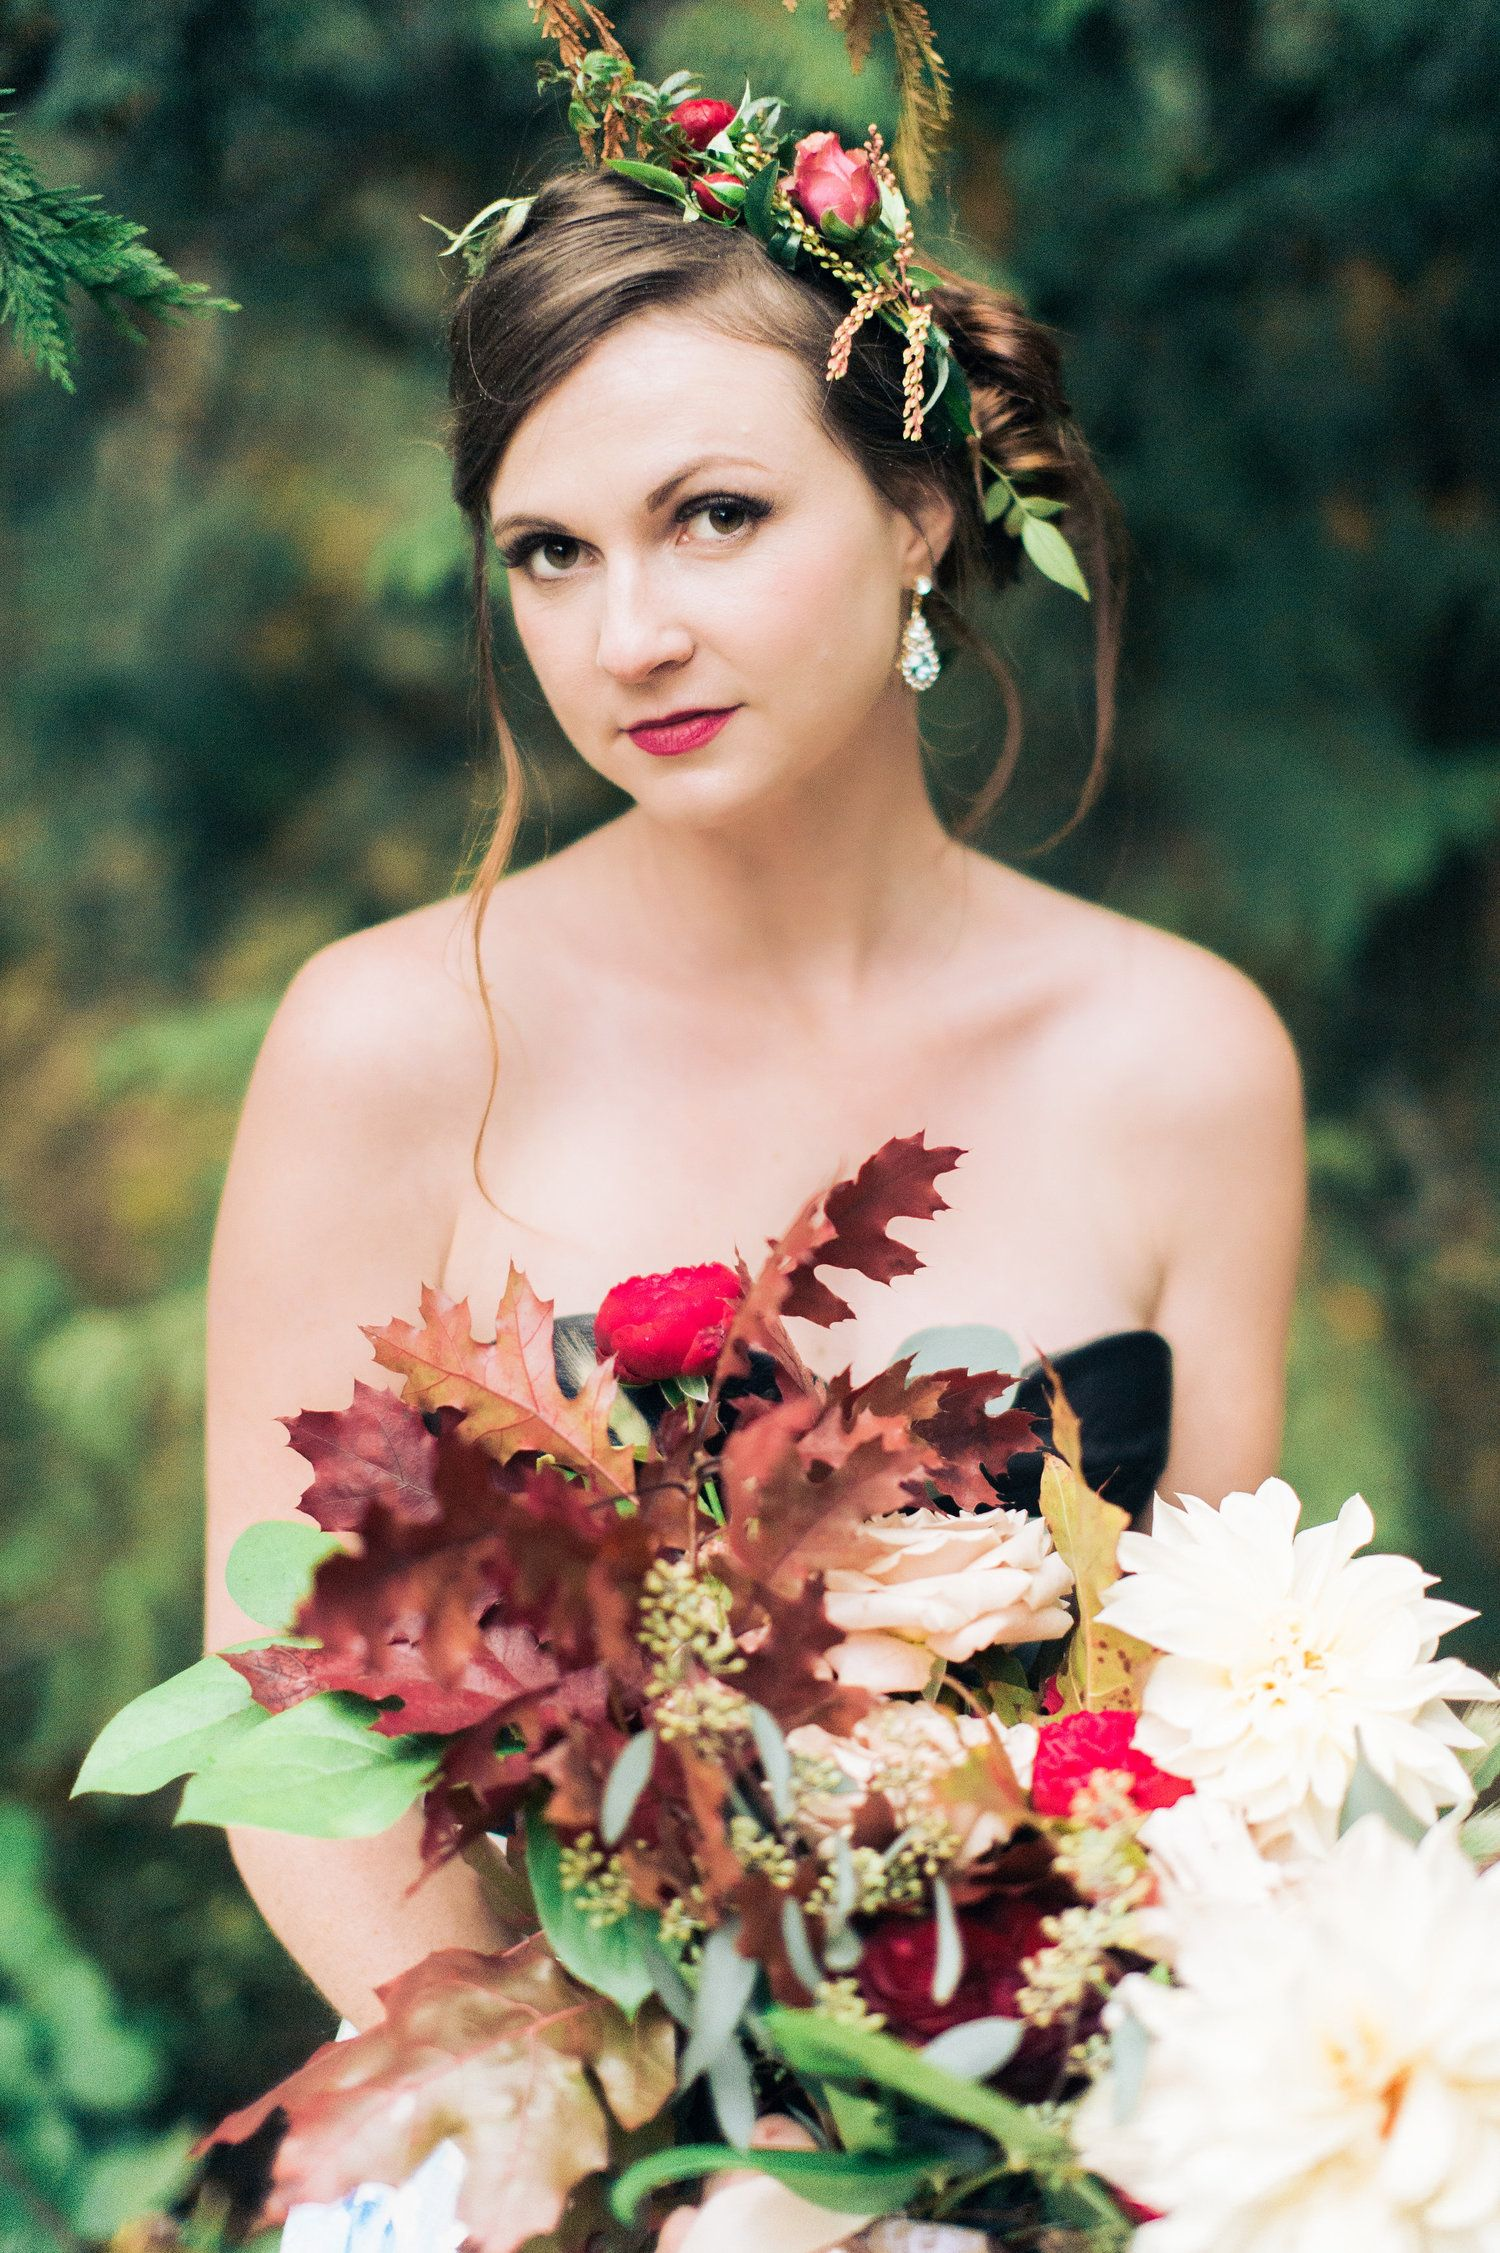 Dress by Clare La Faye. Photo: CJK visuals. Flowers: Studio 3 Floral